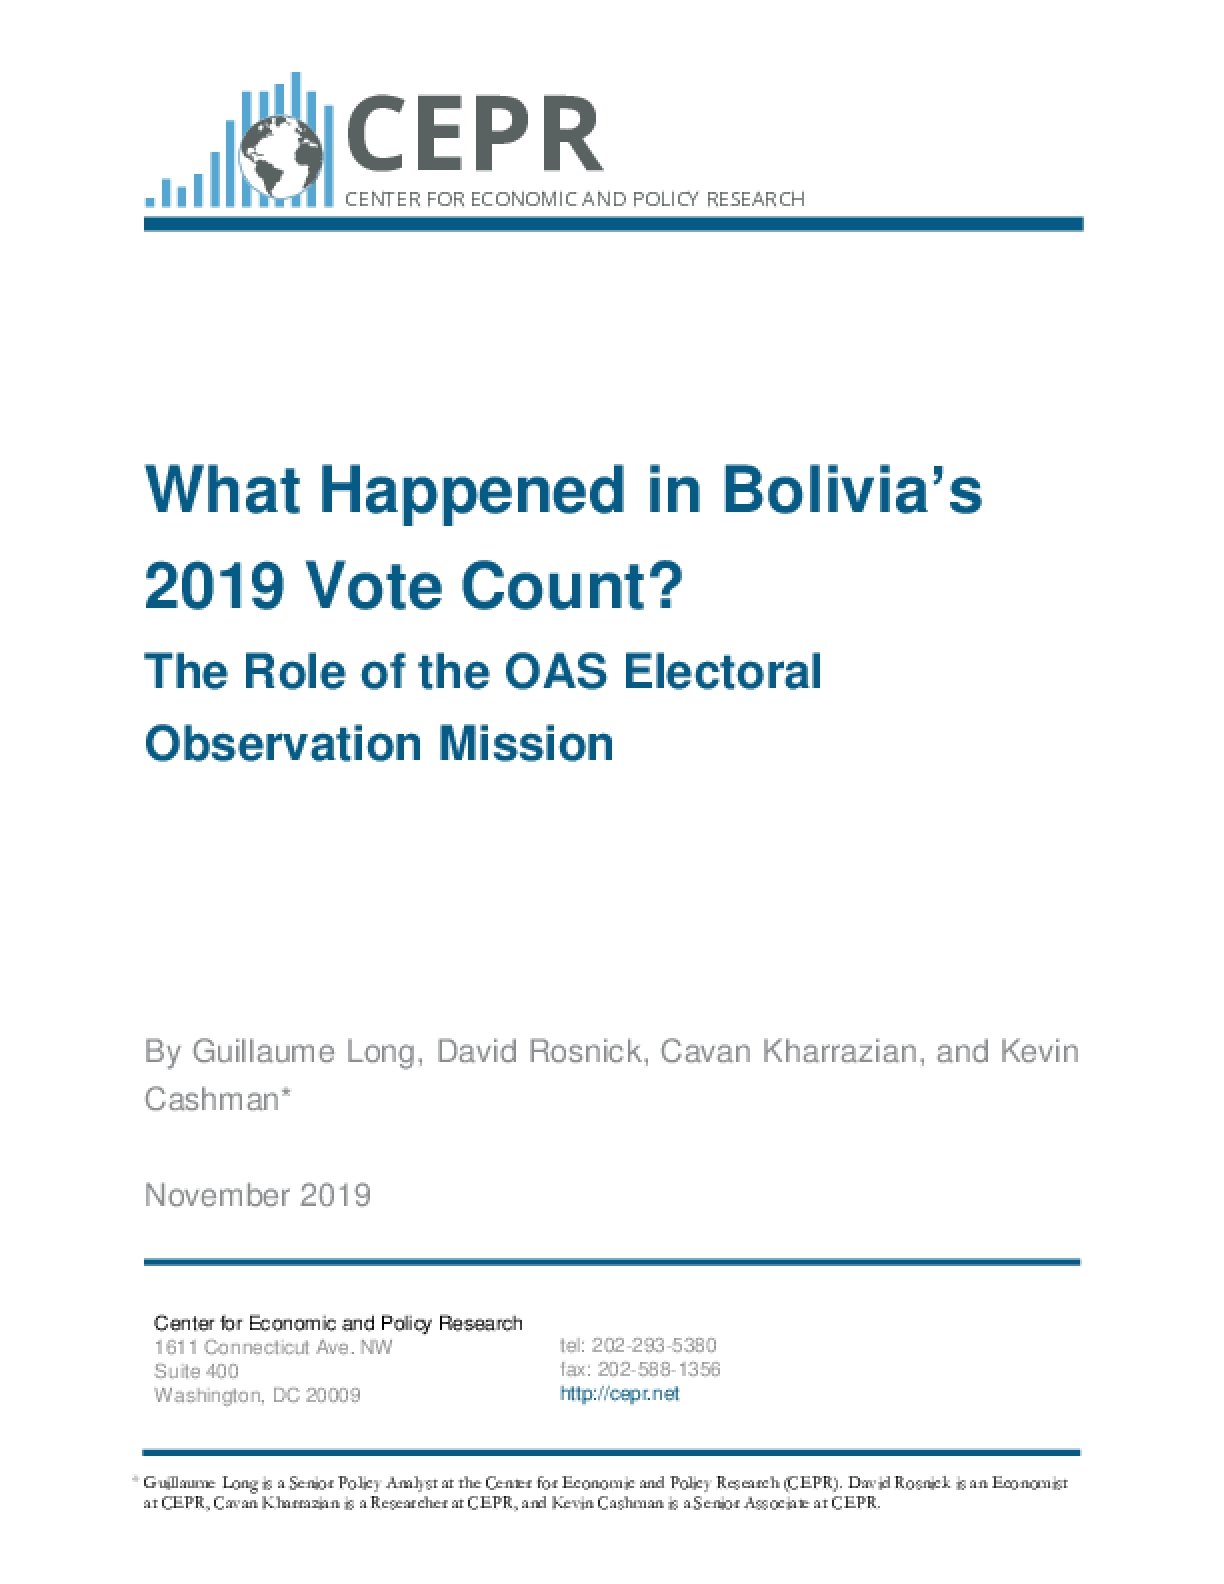 What Happened in Bolivia's 2019 Vote Count? The Role of the OAS Electoral Observation Mission